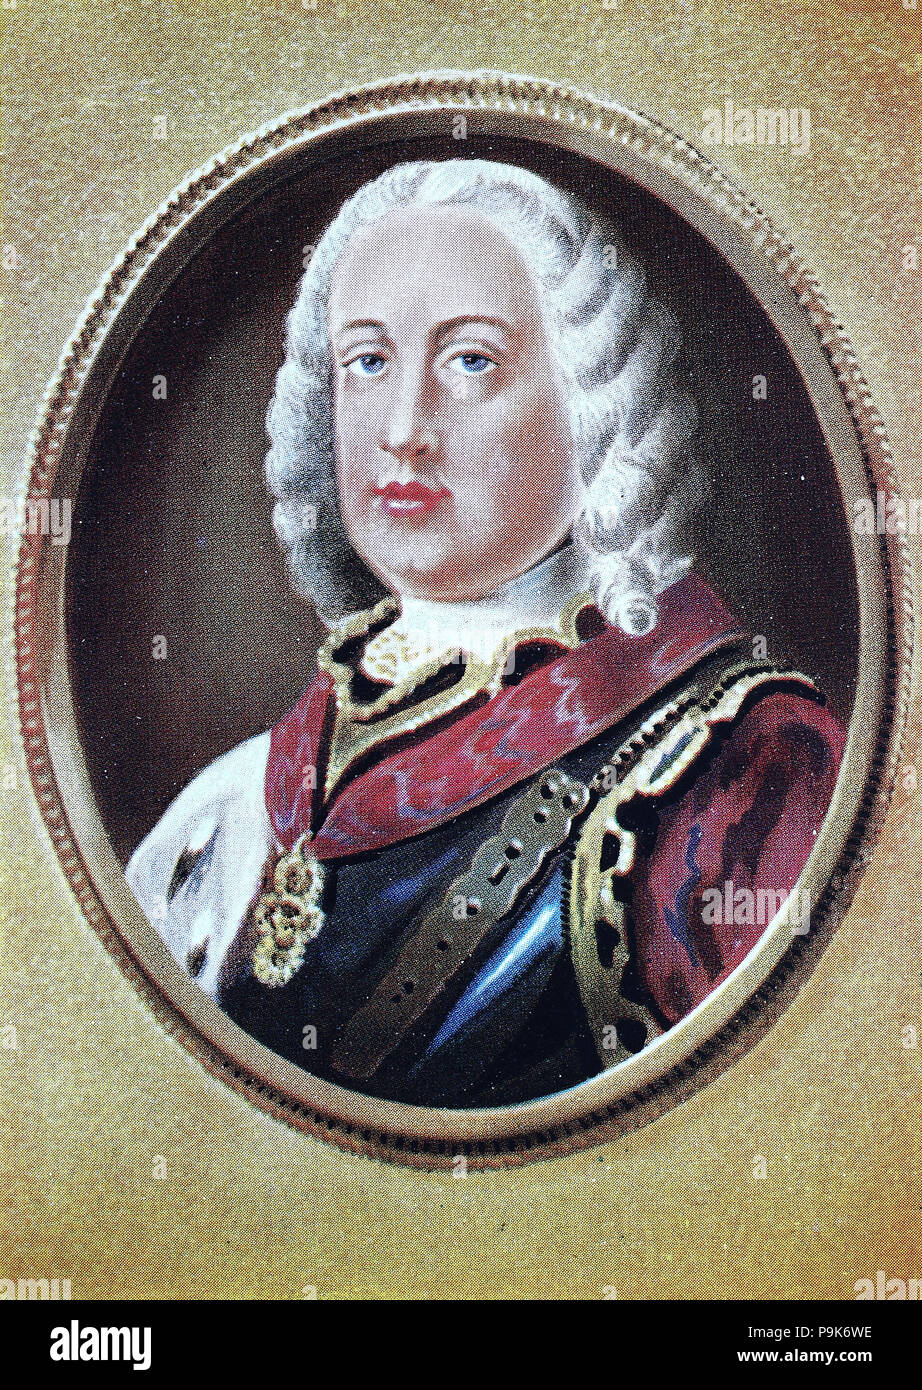 Francis I, Franz Stefan, François Étienne, 8 December 1708 – 18 August 1765, was Holy Roman Emperor and Grand Duke of Tuscany, though his wife effectively executed the real powers of those positions., digital improved reproduction of an original print from the year 1900 - Stock Image